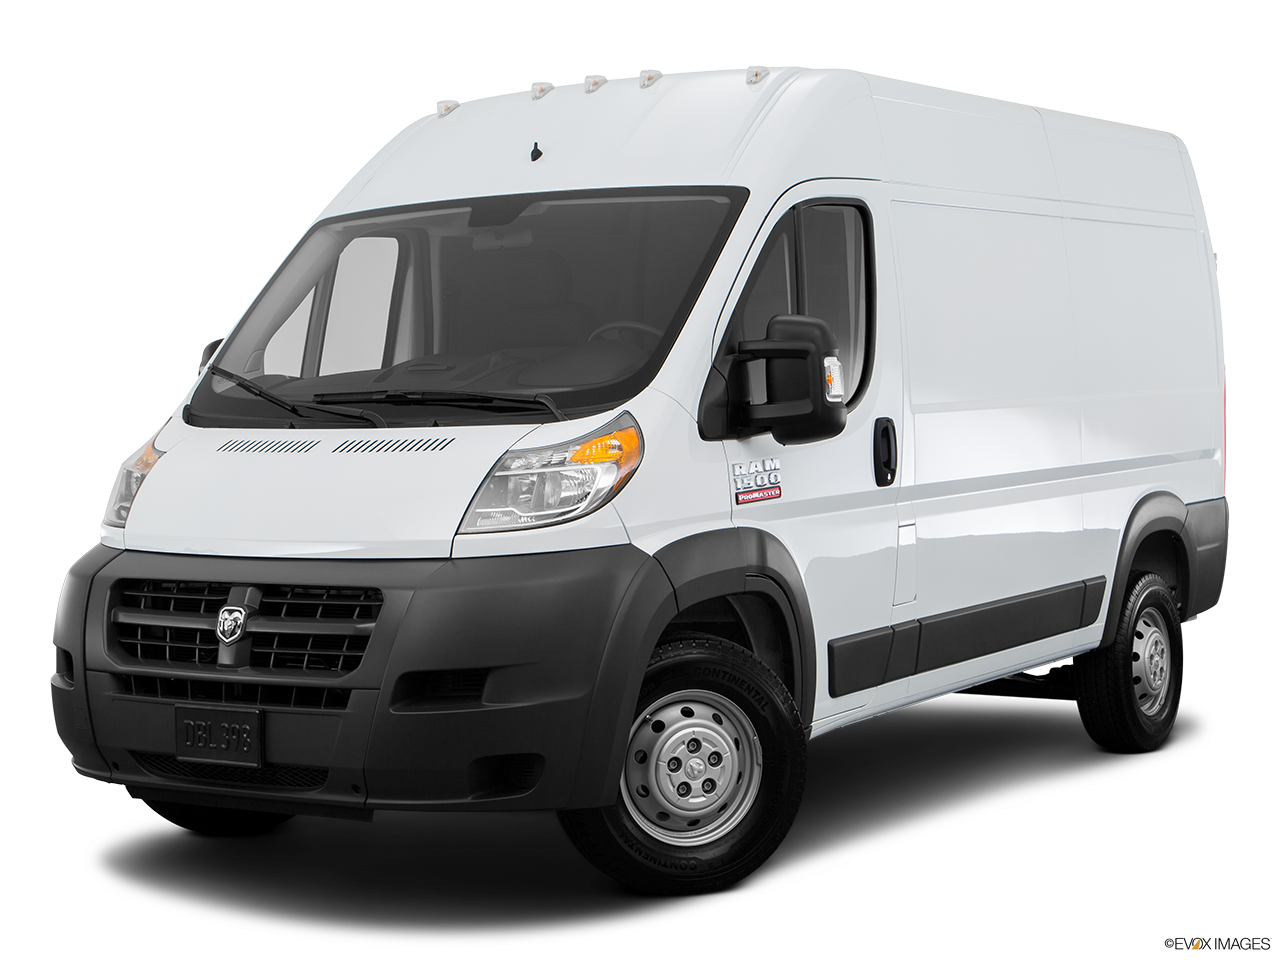 Test Drive A 2016 RAM ProMaster at Arrigo Of Sawgrass in Tamarac